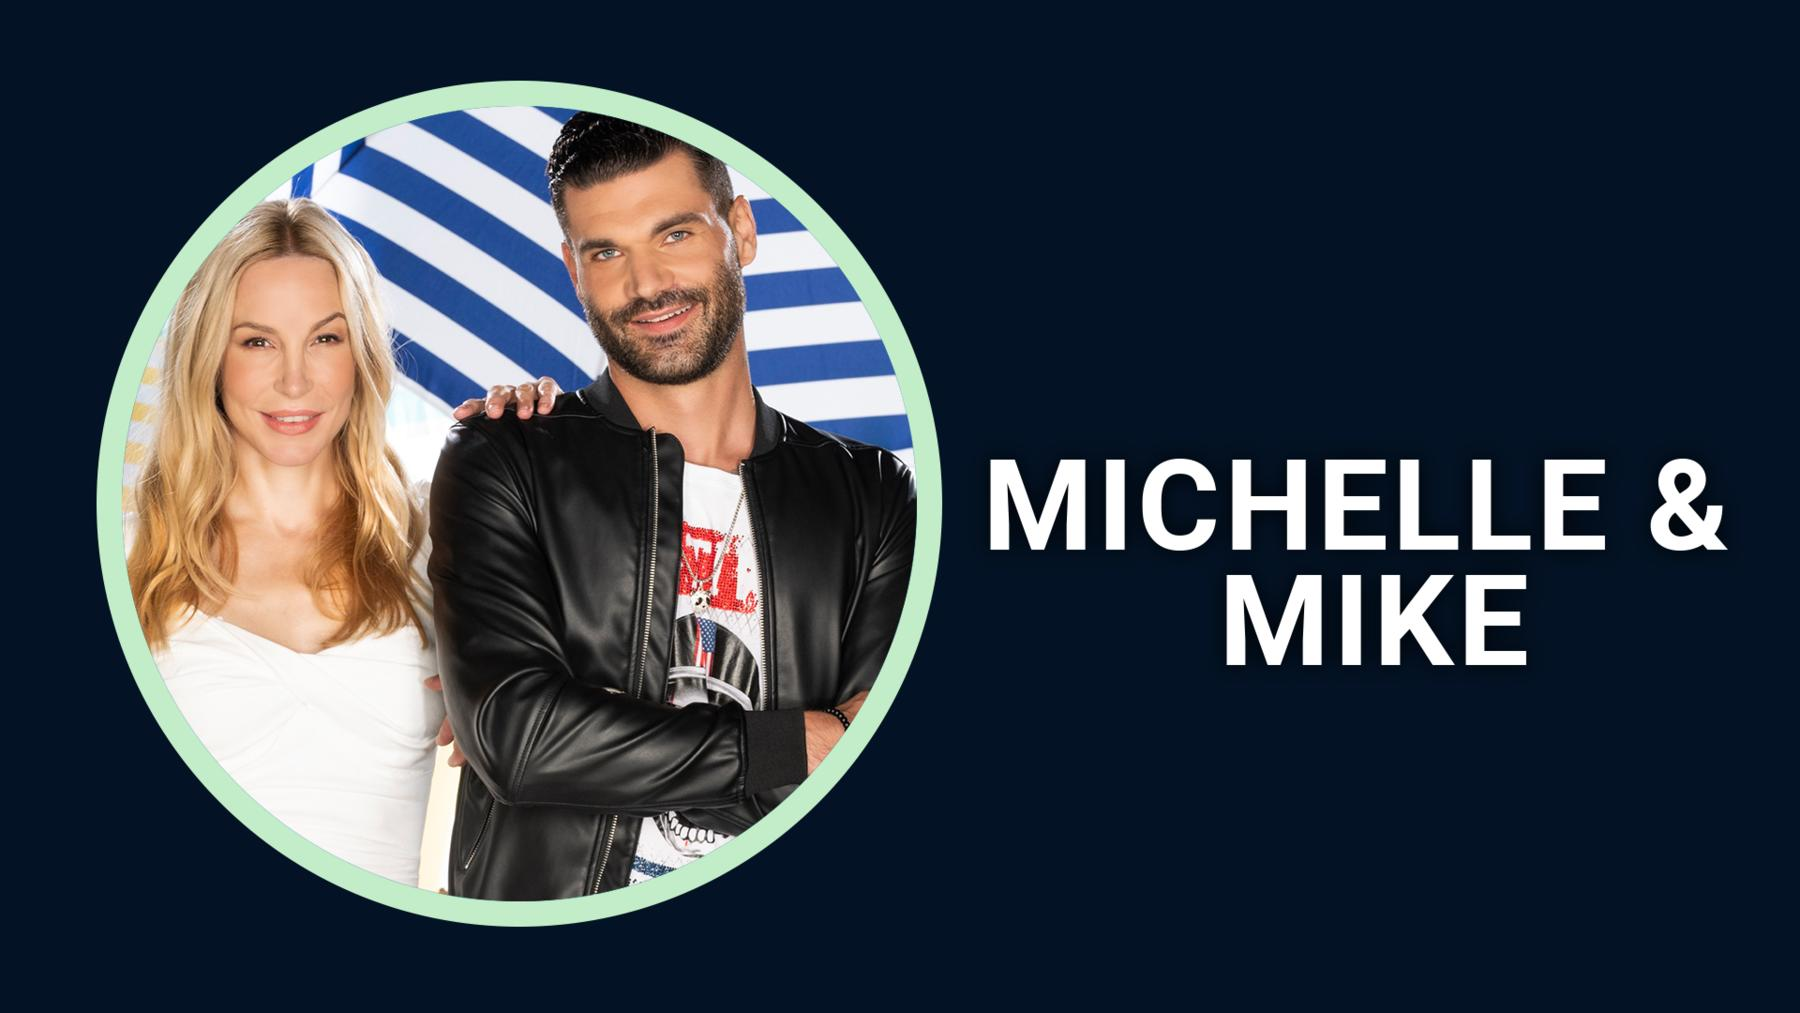 Michelle & Mike